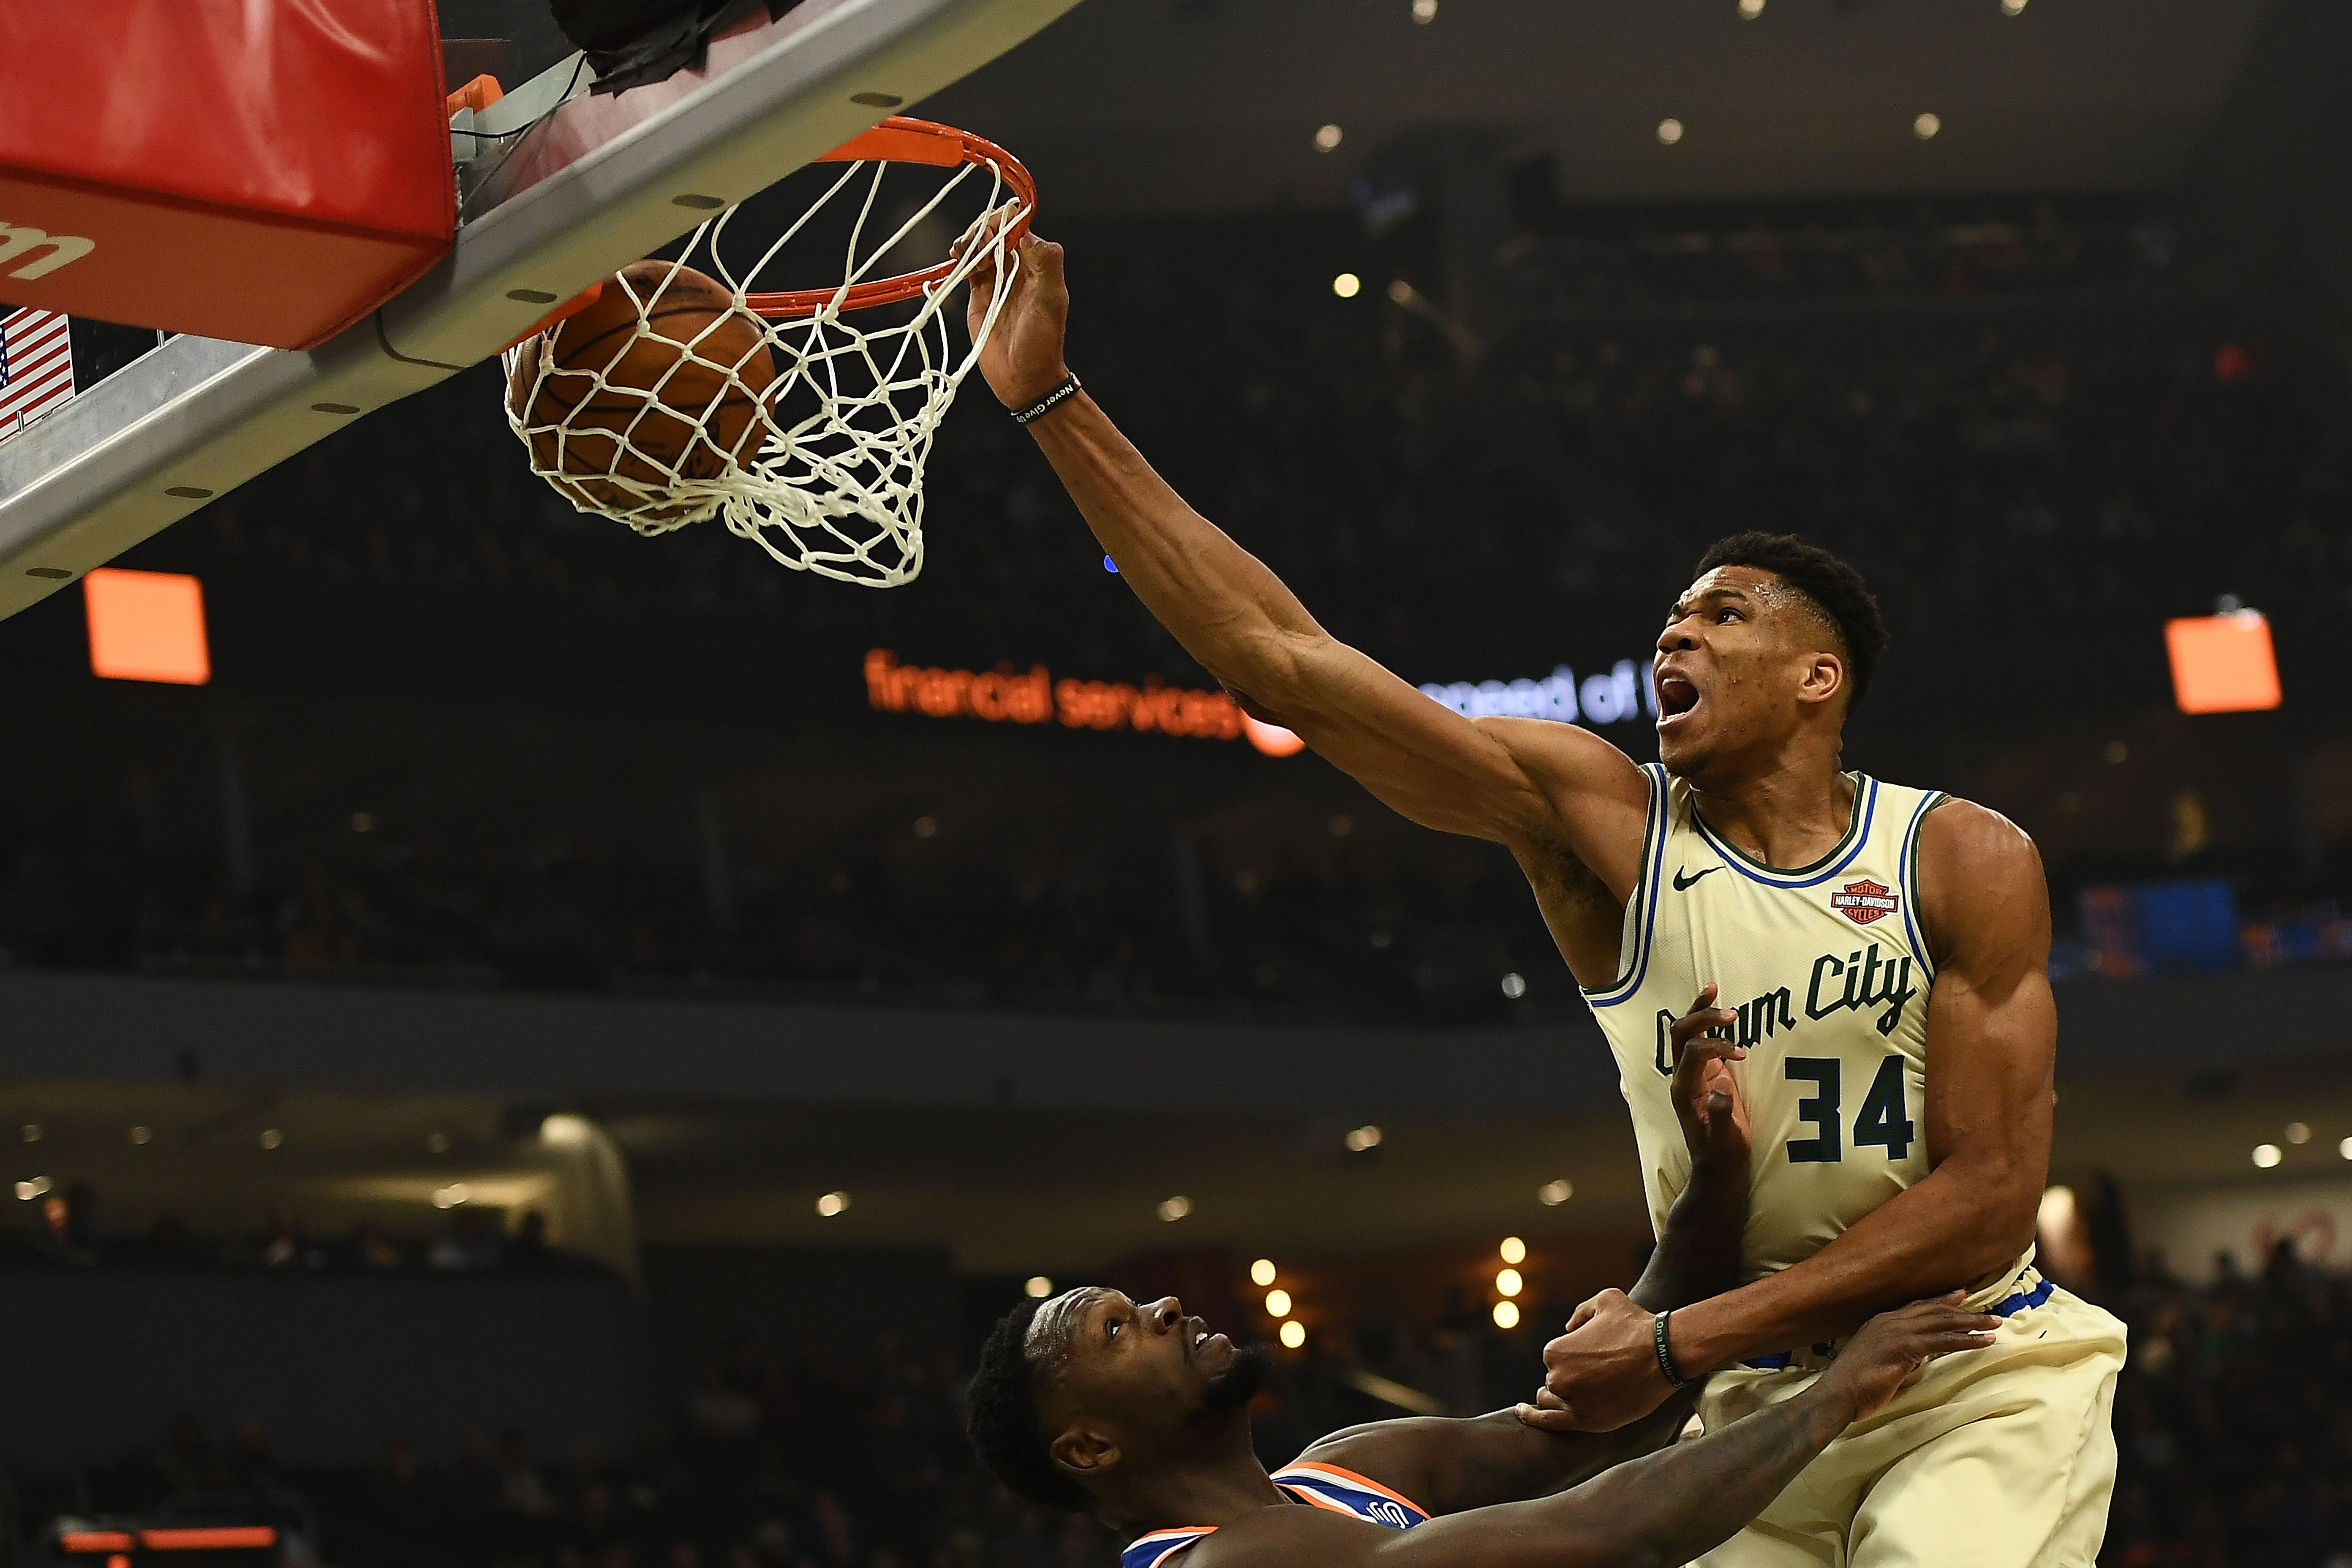 Giannis dunking